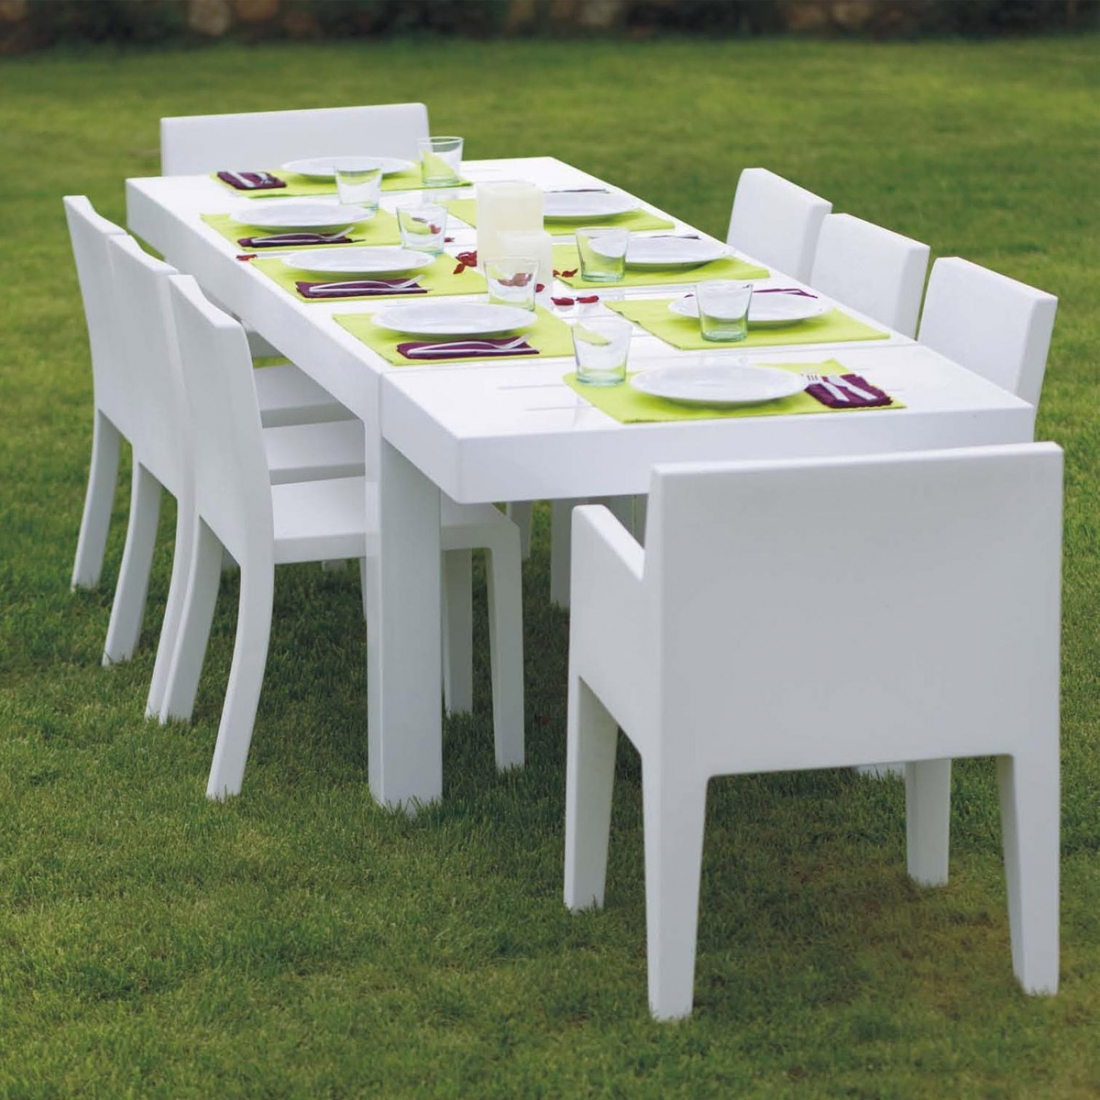 Table de jardin design 10 personnes jut par vondom for Table jardin design